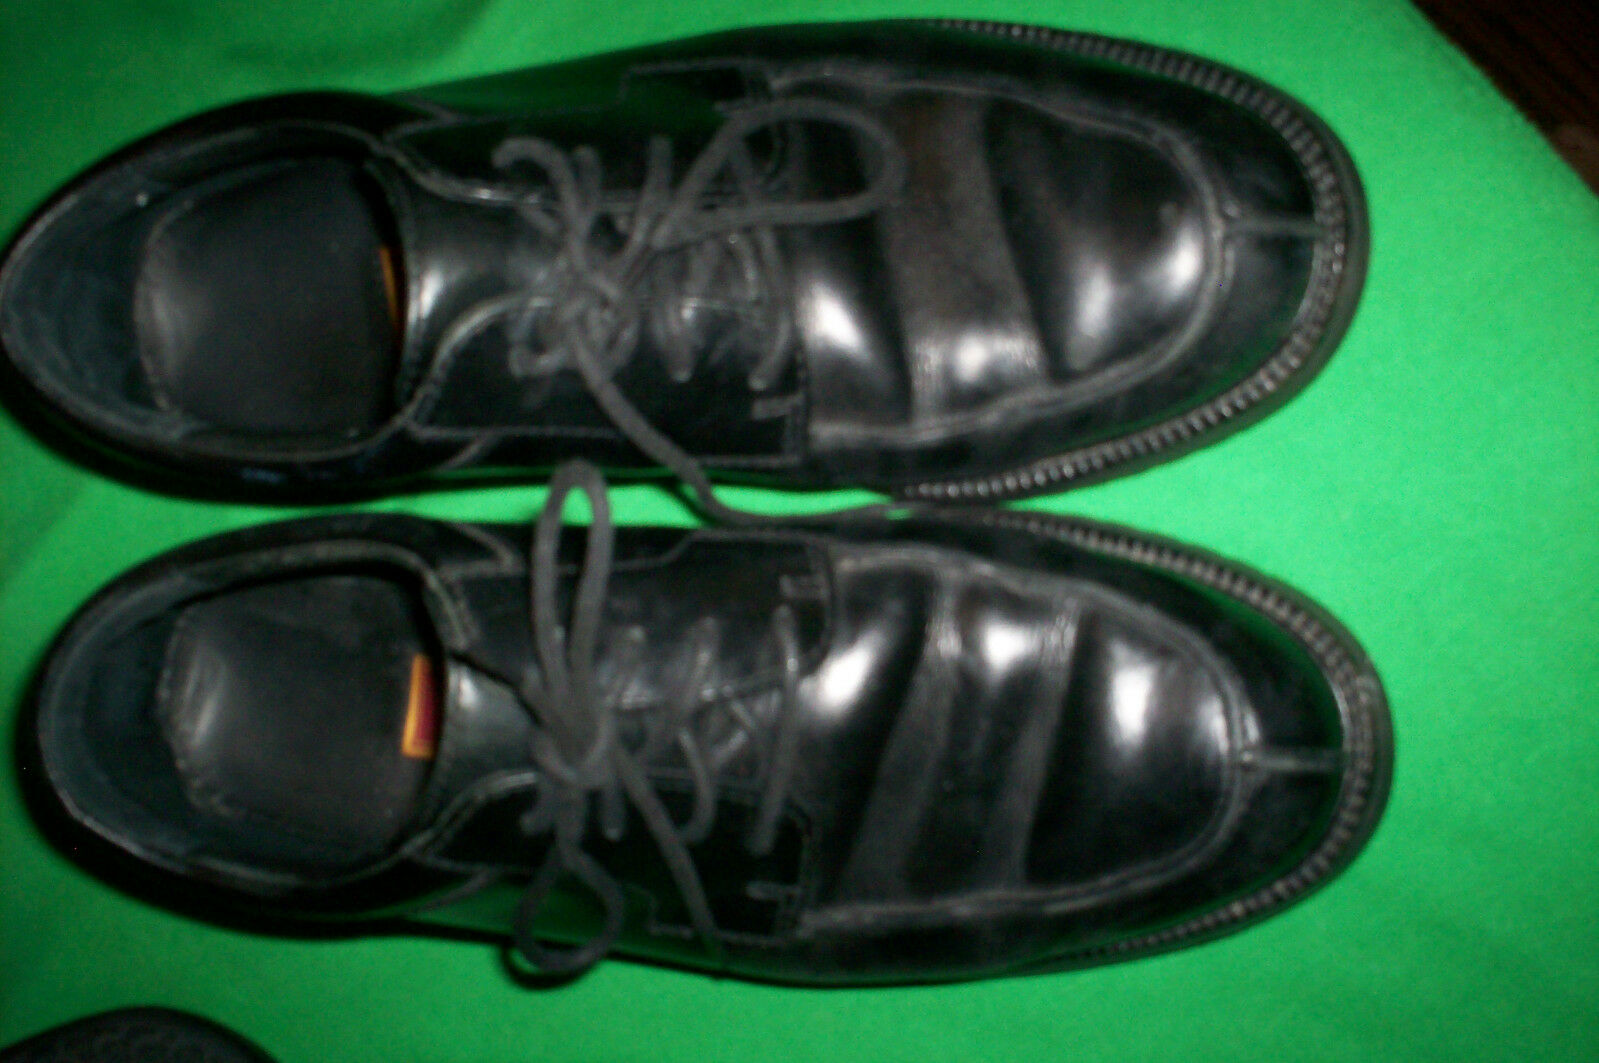 EUC COLE HAAN OXFORDS MENS WATERPROOF BLACK LEATHER OXFORDS HAAN SHOES 7M 5aef81